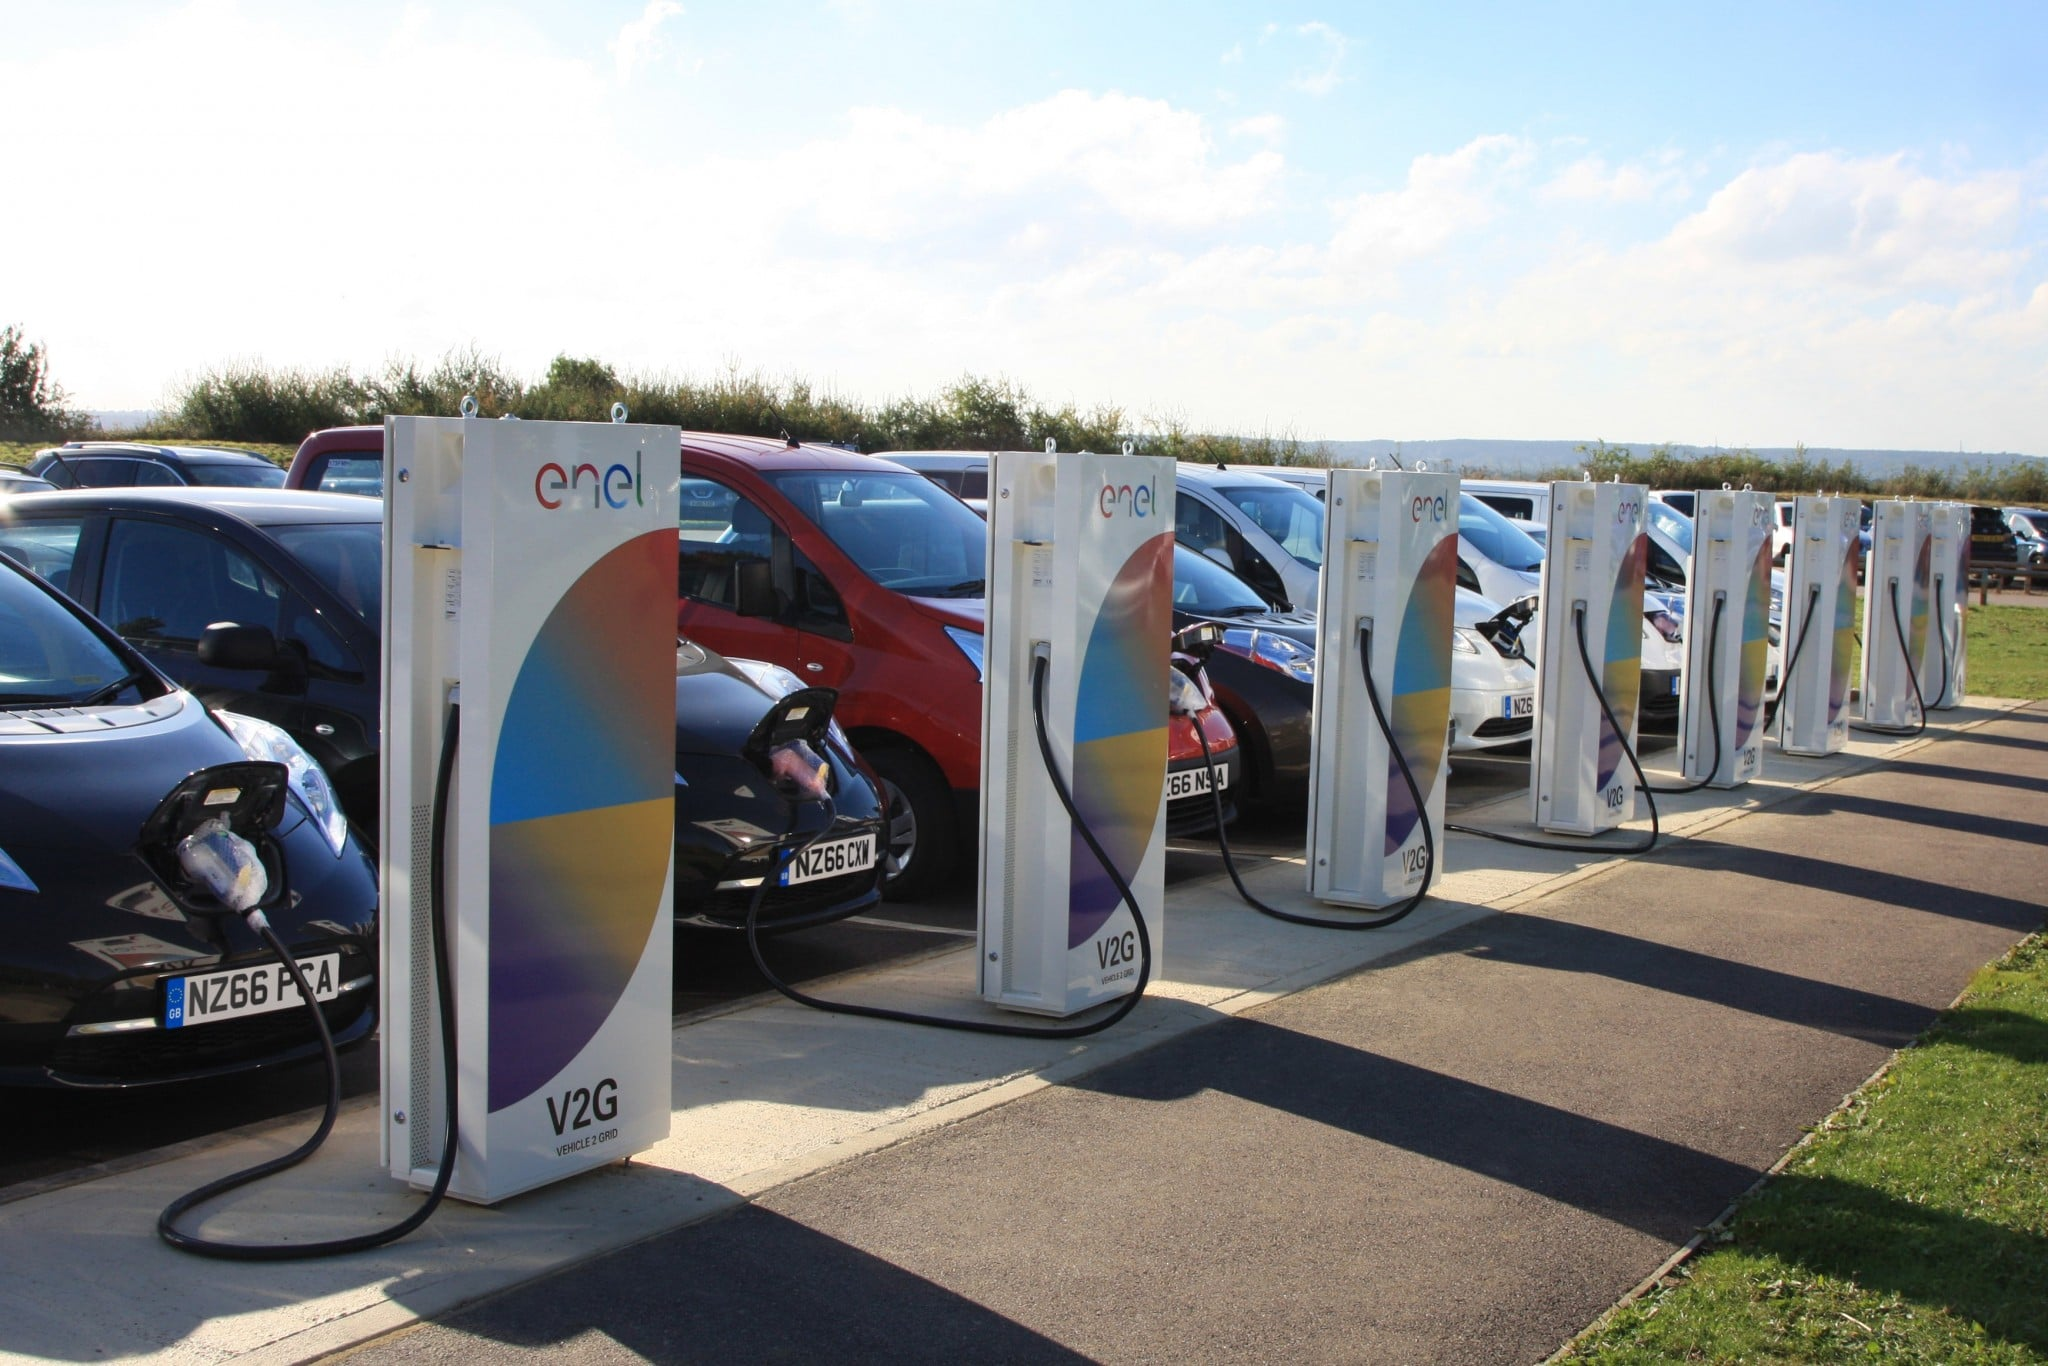 101687nis Nissan powers up UK based European R D hub with vehicle to grid technology 2 Moixa | Home Energy Storage | Smart Energy Management